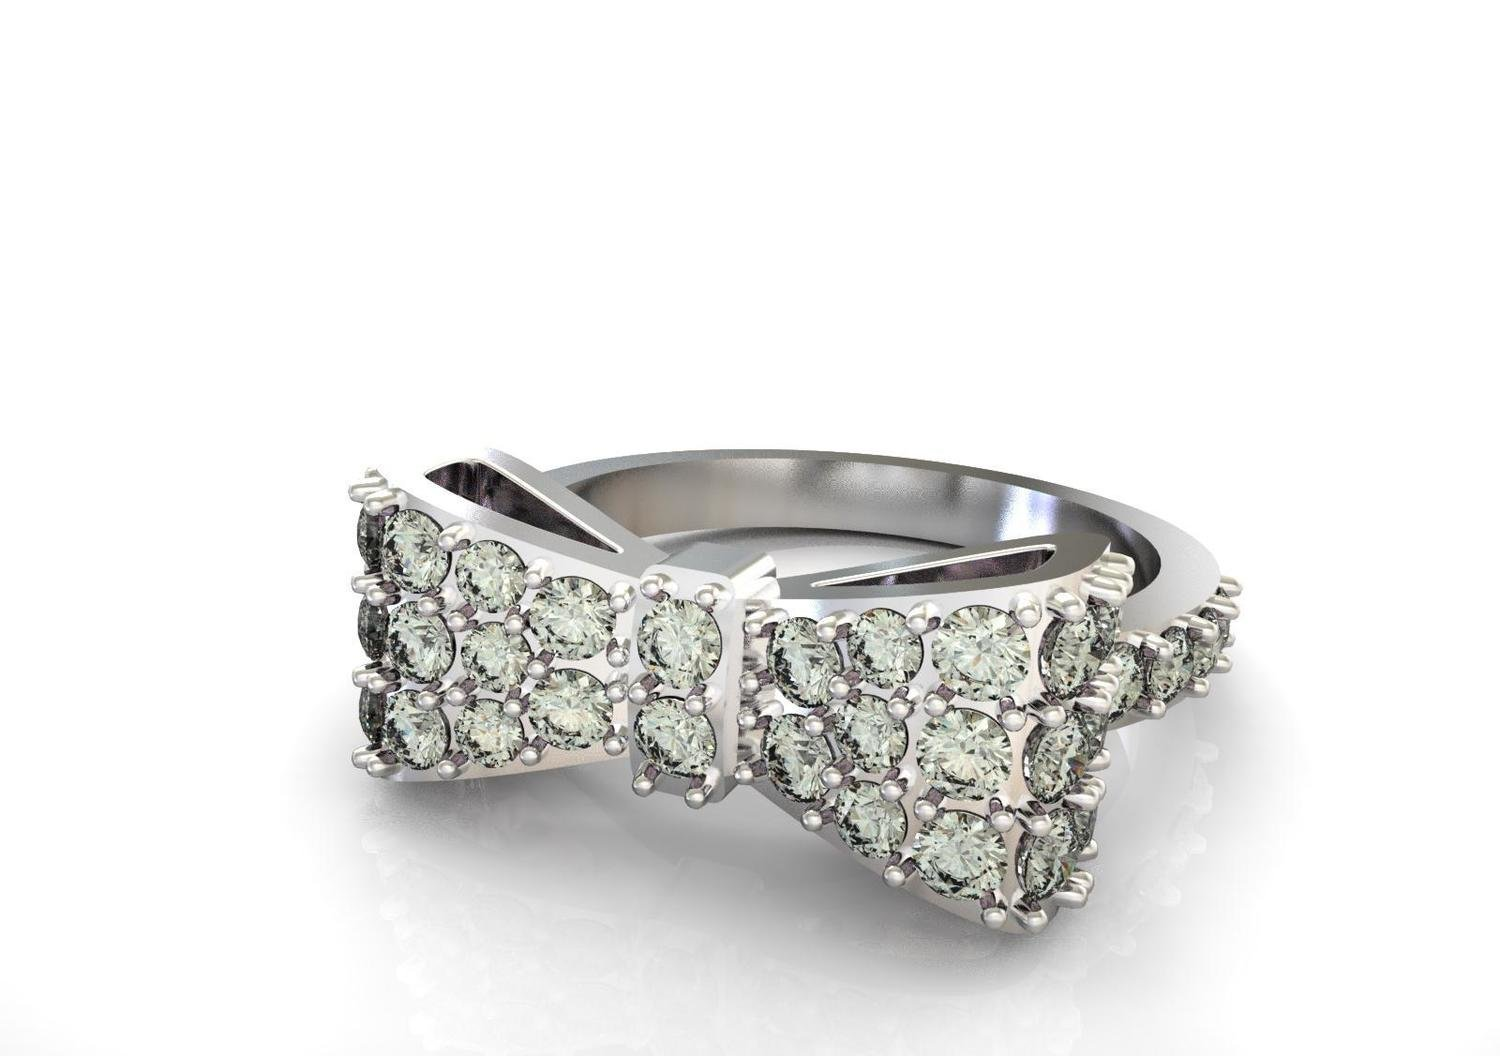 3D CAD Model of Diamond Engagement Ring